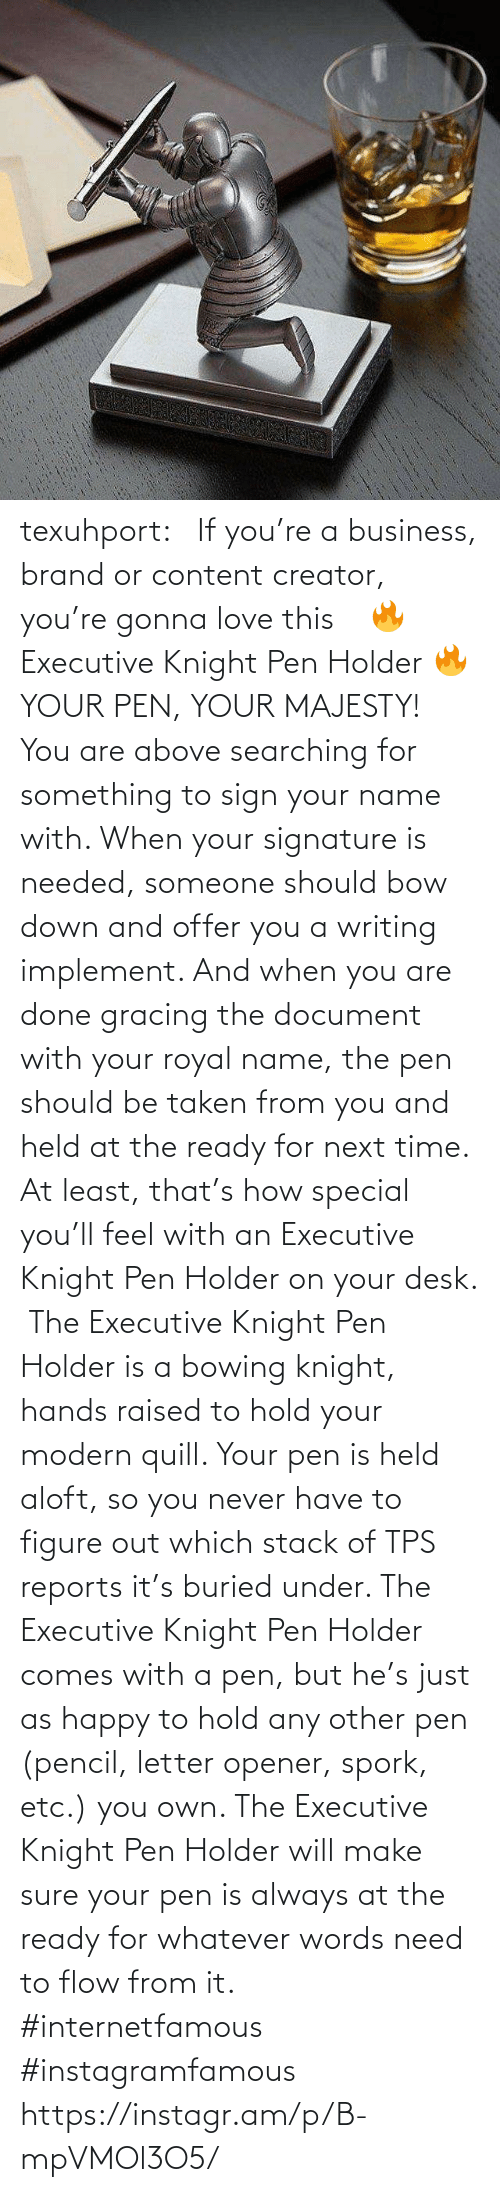 But He: texuhport:⎆ If you're a business, brand or content creator, you're gonna love this ⎆⁣ 🔥 Executive Knight Pen Holder 🔥⁣ YOUR PEN, YOUR MAJESTY!⁣ ⁣ You are above searching for something to sign your name with. When your signature is needed, someone should bow down and offer you a writing implement. And when you are done gracing the document with your royal name, the pen should be taken from you and held at the ready for next time. At least, that's how special you'll feel with an Executive Knight Pen Holder on your desk.⁣ ⁣ The Executive Knight Pen Holder is a bowing knight, hands raised to hold your modern quill. Your pen is held aloft, so you never have to figure out which stack of TPS reports it's buried under. The Executive Knight Pen Holder comes with a pen, but he's just as happy to hold any other pen (pencil, letter opener, spork, etc.) you own. The Executive Knight Pen Holder will make sure your pen is always at the ready for whatever words need to flow from it.⁣ #internetfamous  #instagramfamous https://instagr.am/p/B-mpVMOl3O5/